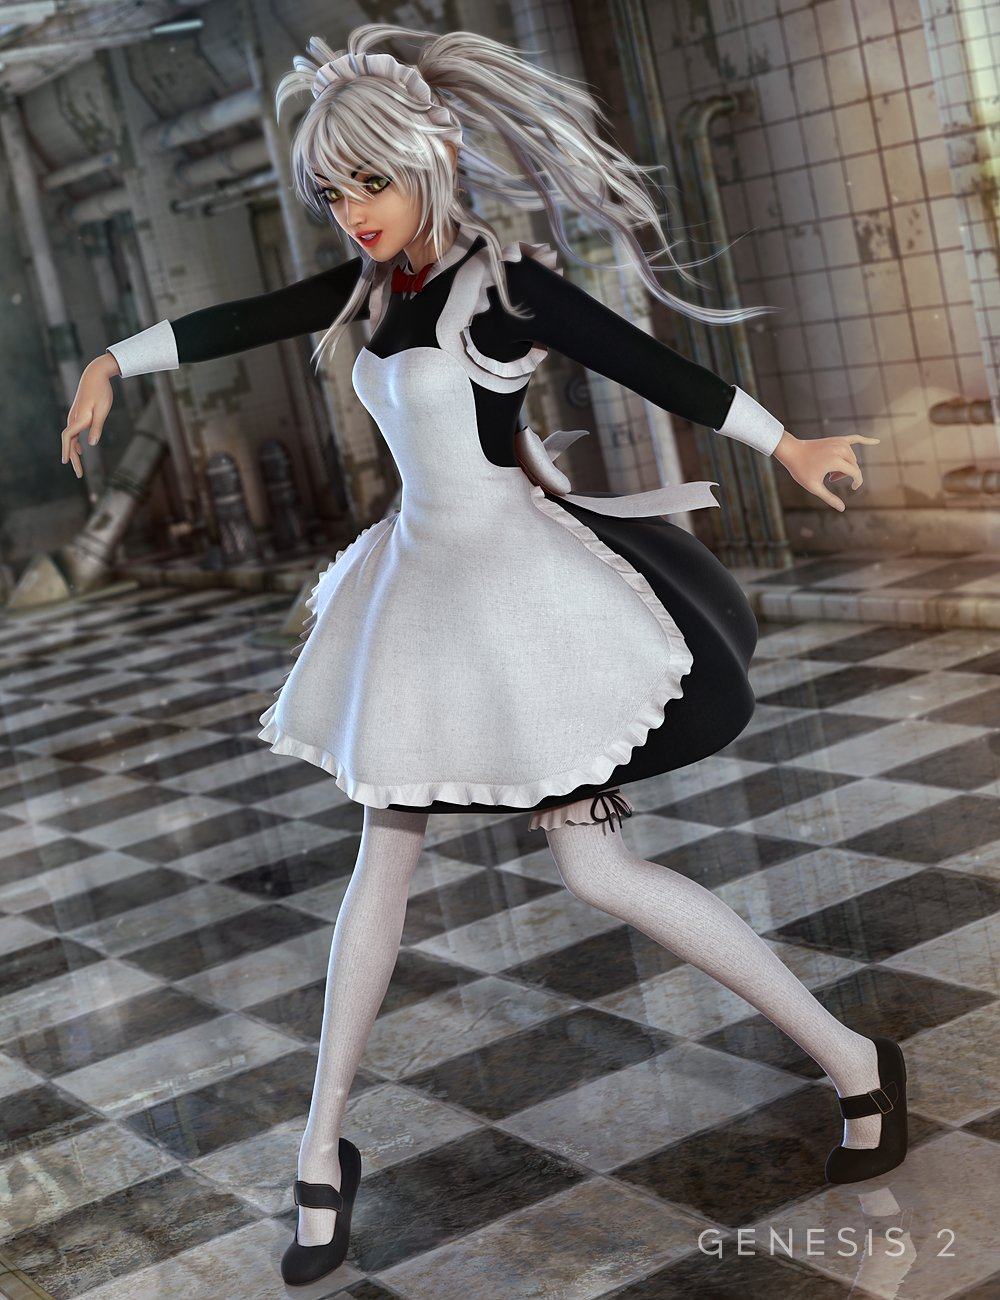 The Maid Outfit for Genesis 2 Female(s) by: NikisatezSarsa, 3D Models by Daz 3D